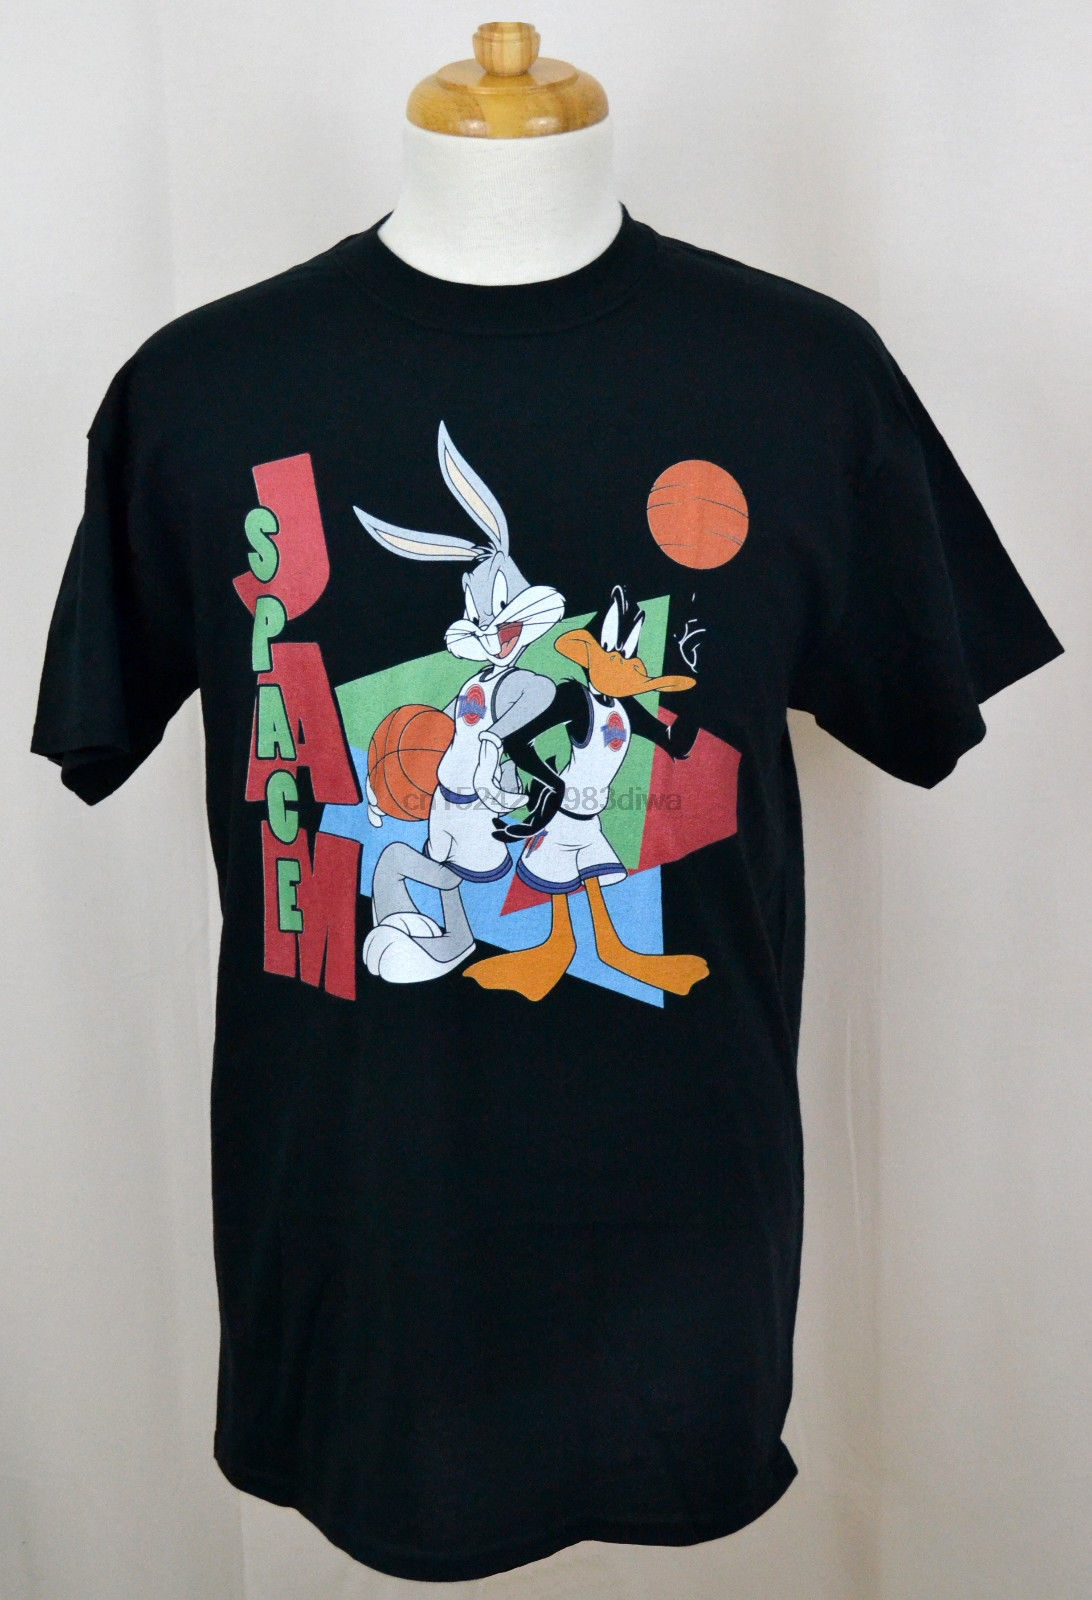 9052d43b60cd1c Buy space jam shirt and get free shipping on AliExpress.com